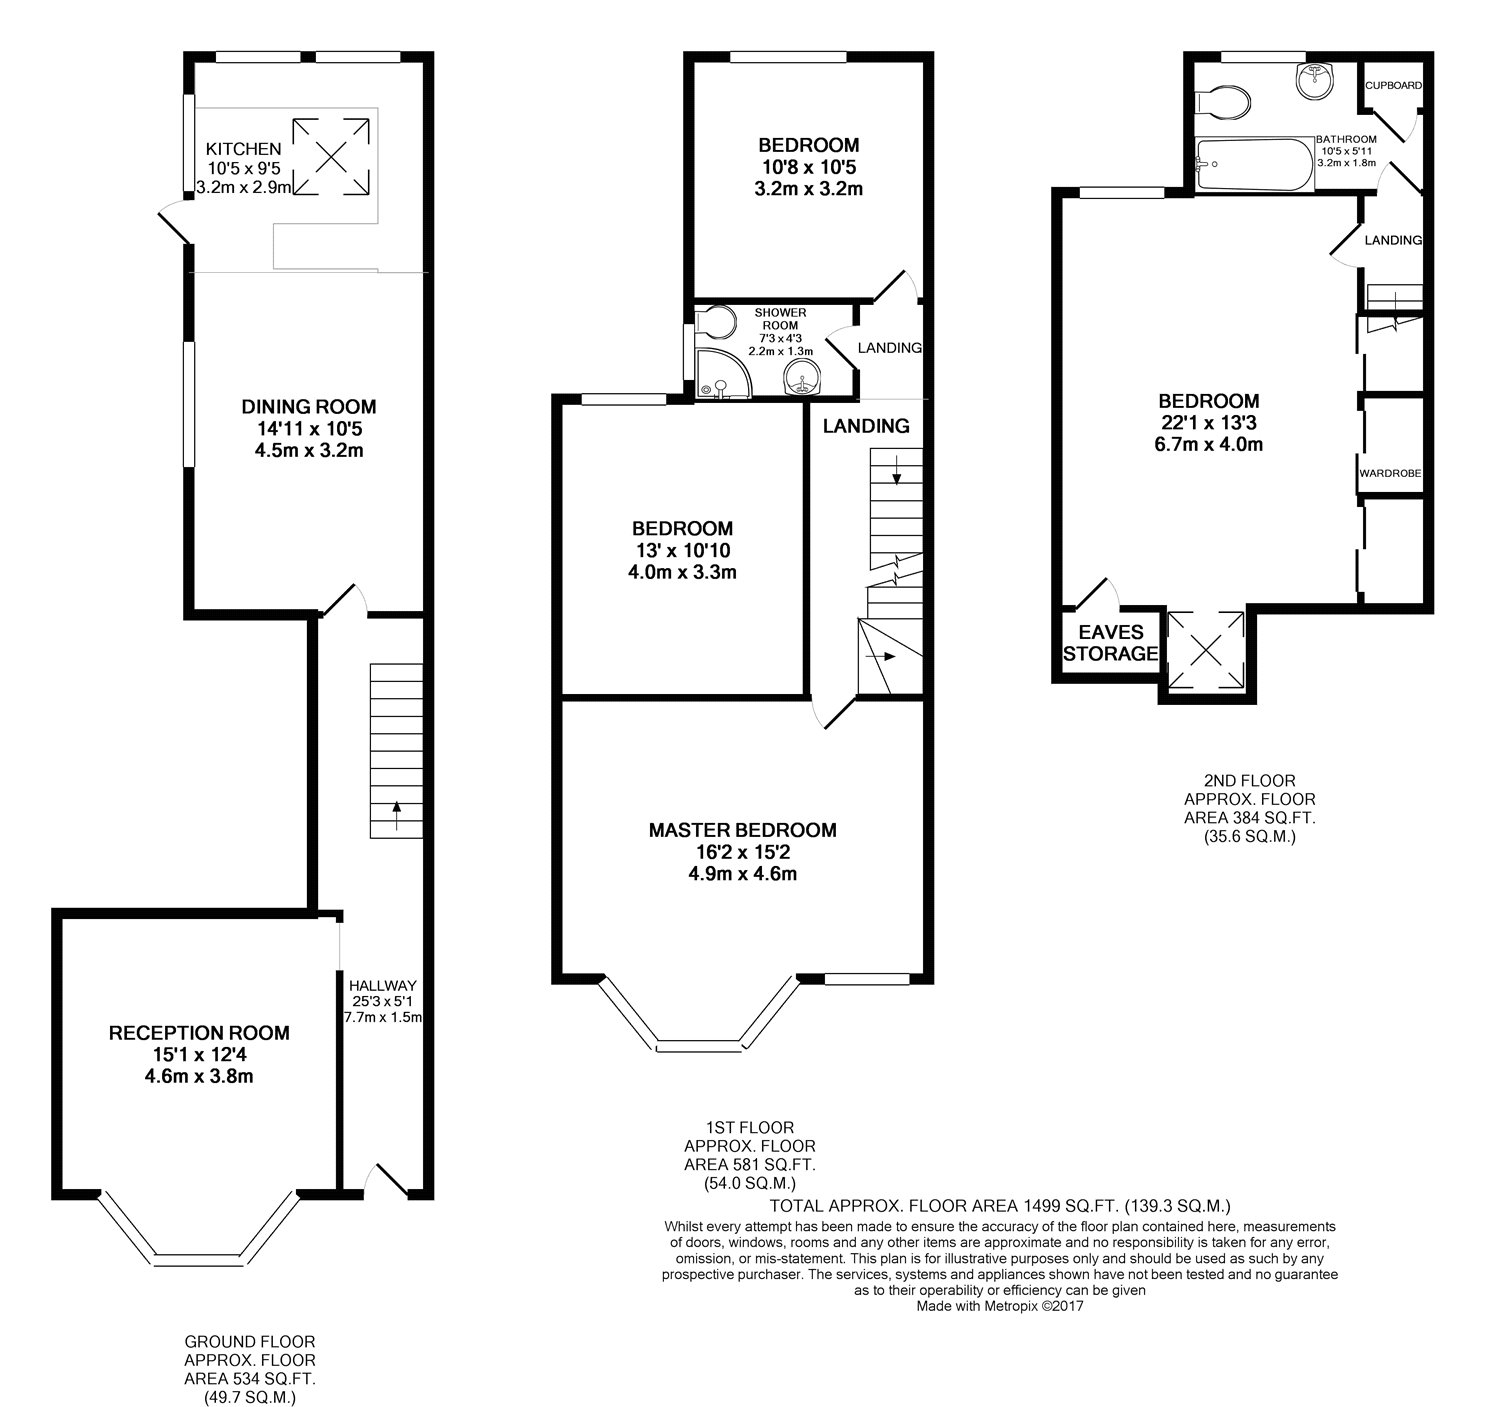 Floorplan of 4 bedroom House to rent